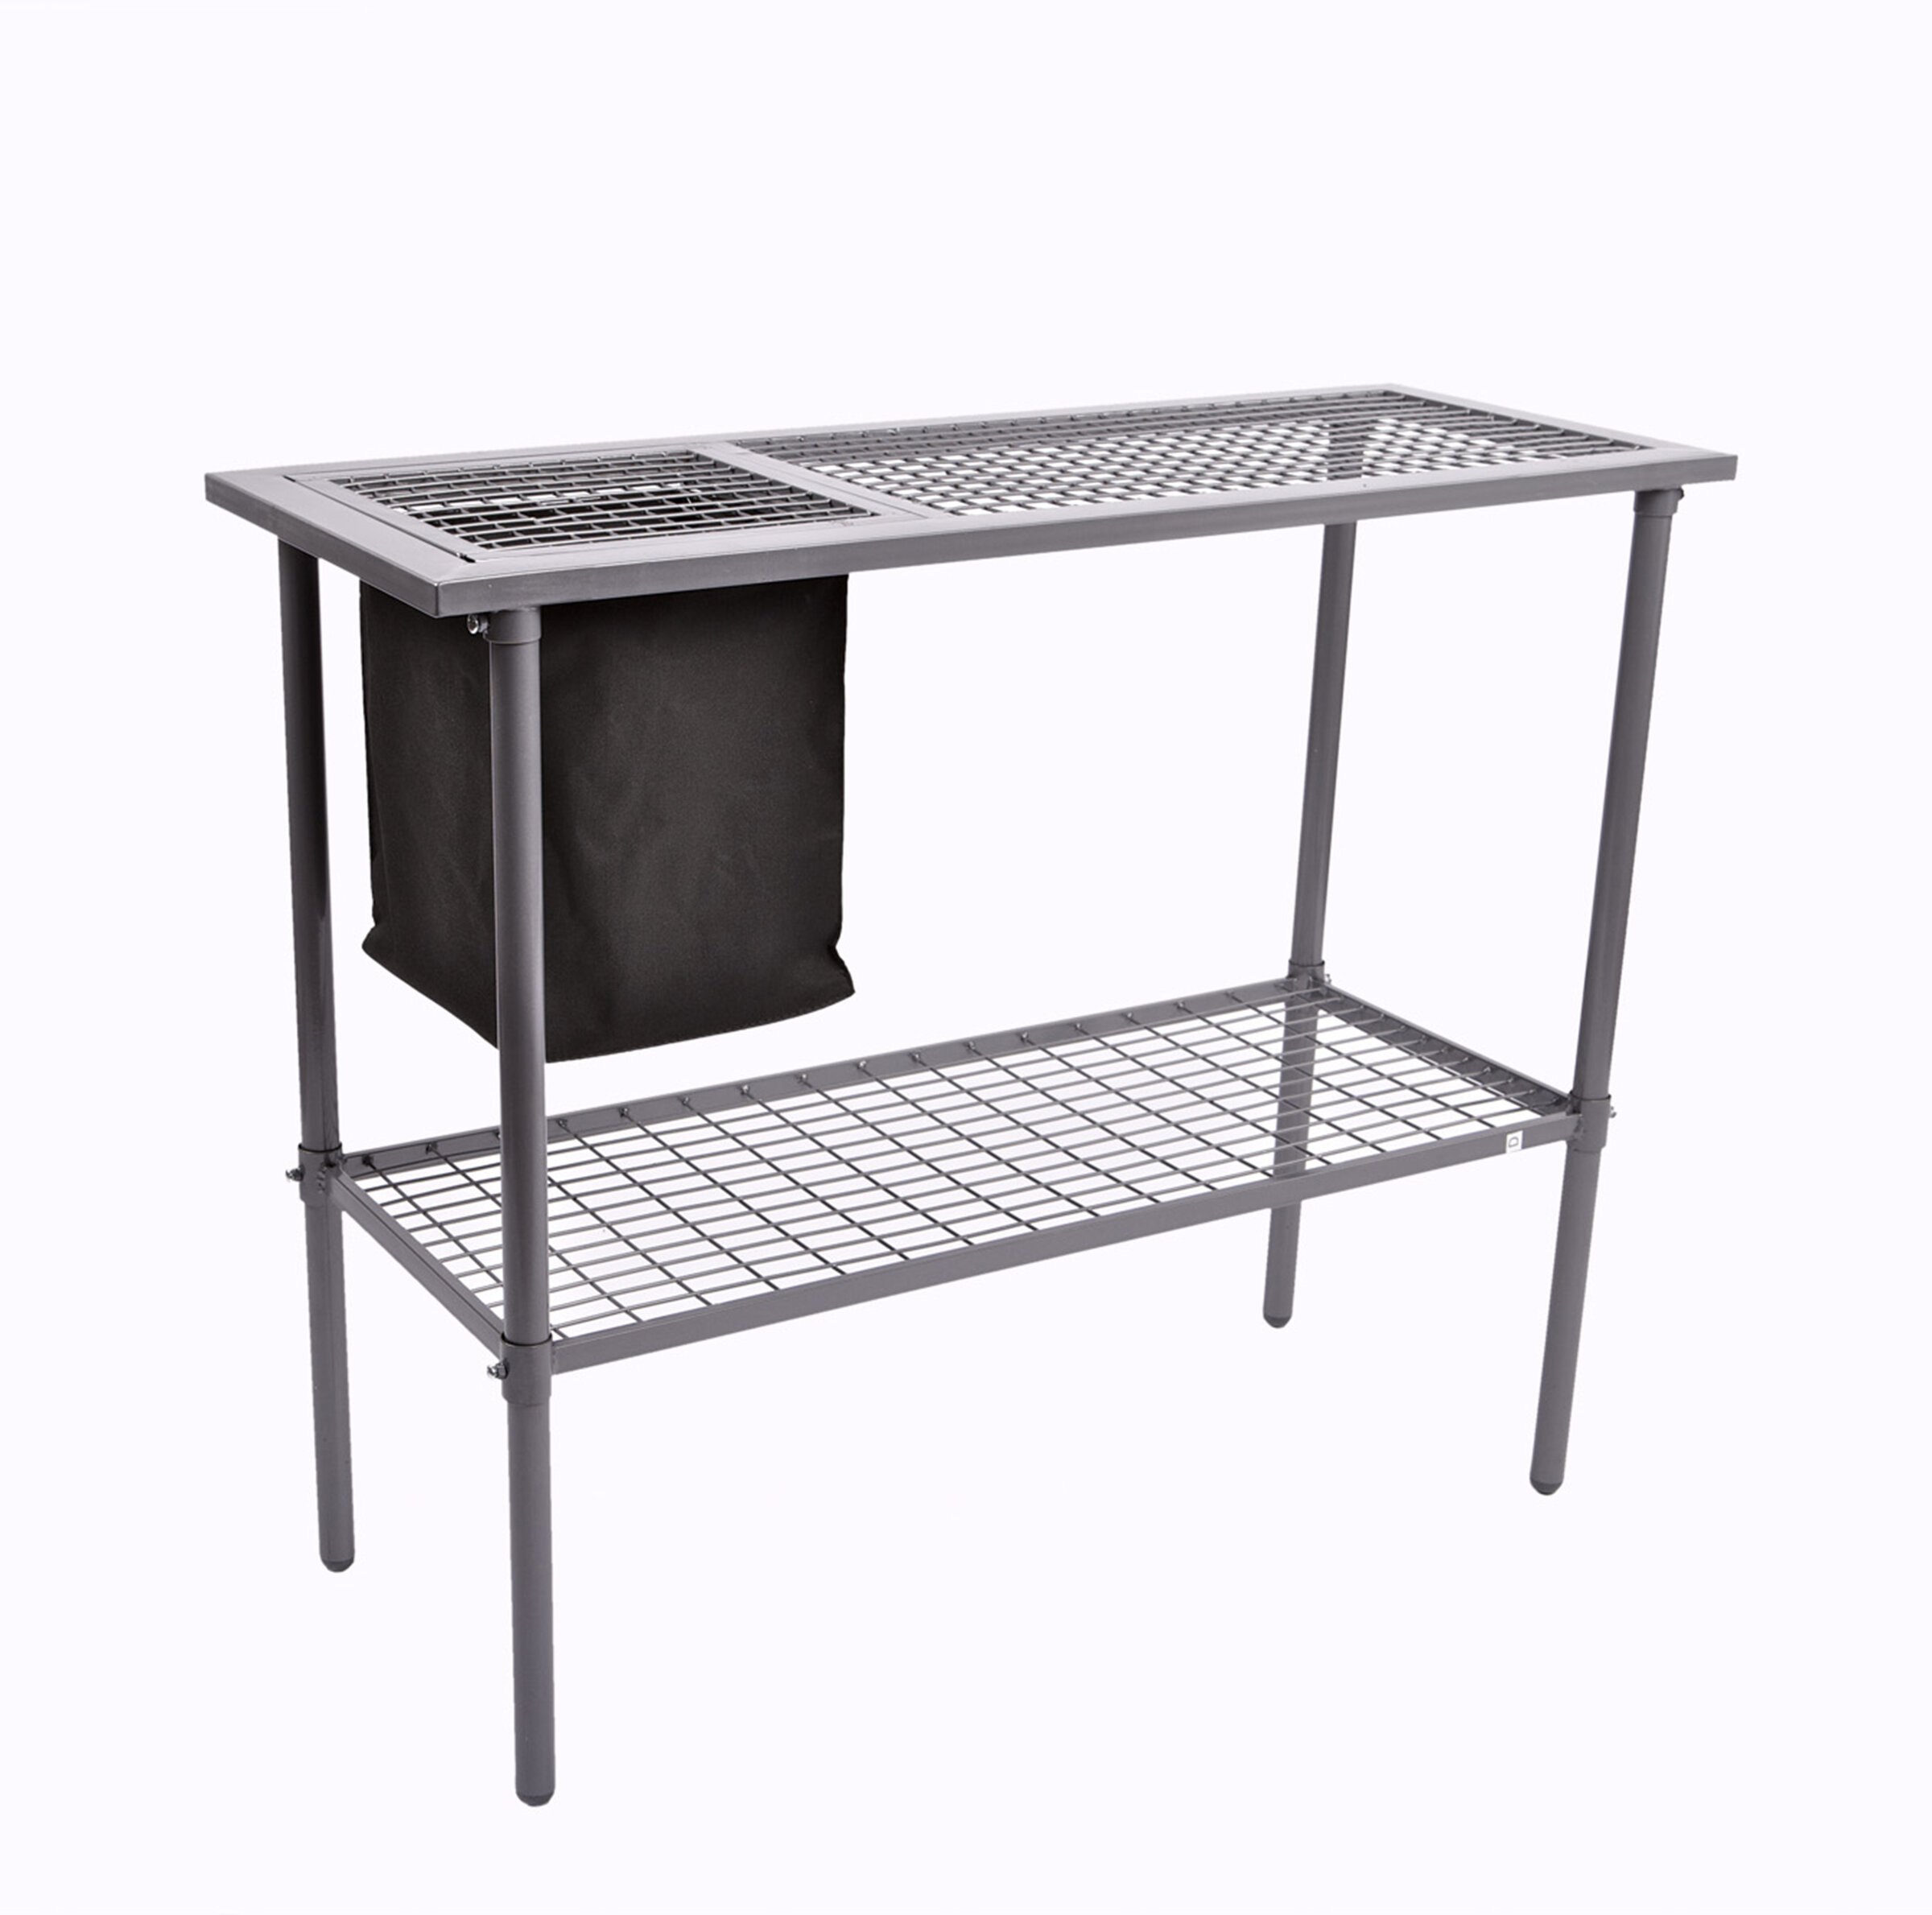 Jewett Cameron Garden Utility Bench with Wire Mesh Top & Reviews ...